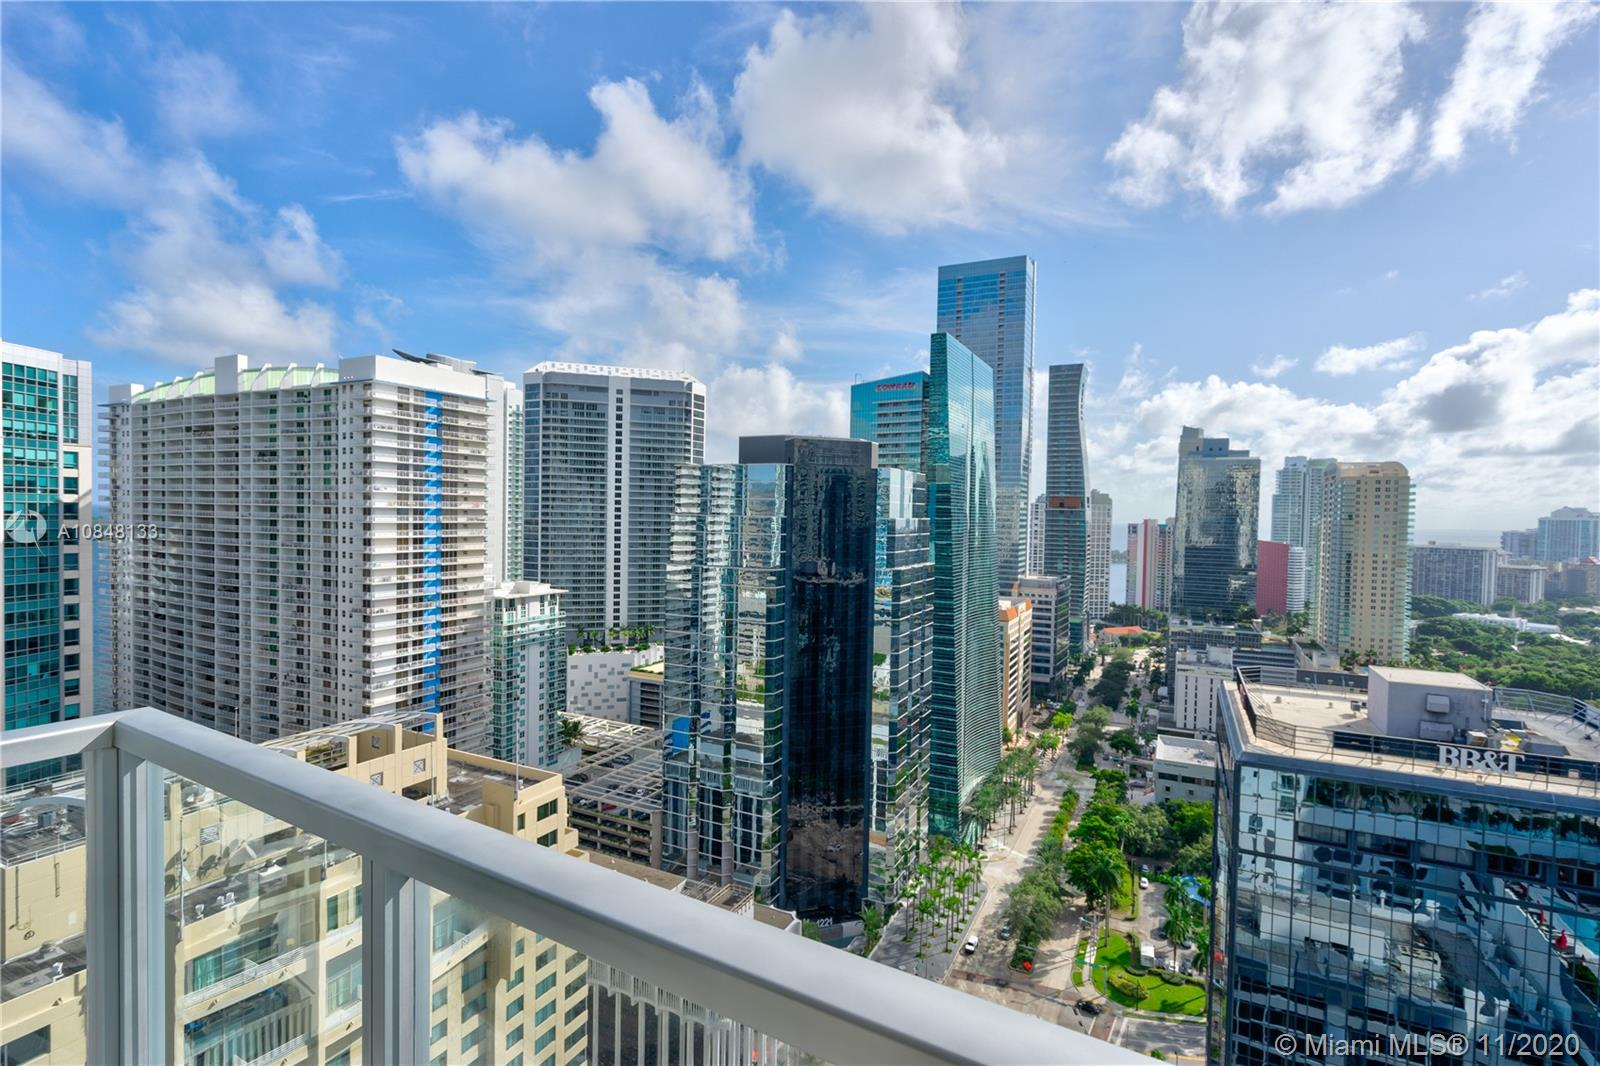 1060 Brickell West Tower #3007 - 1060 Brickell Ave #3007, Miami, FL 33131